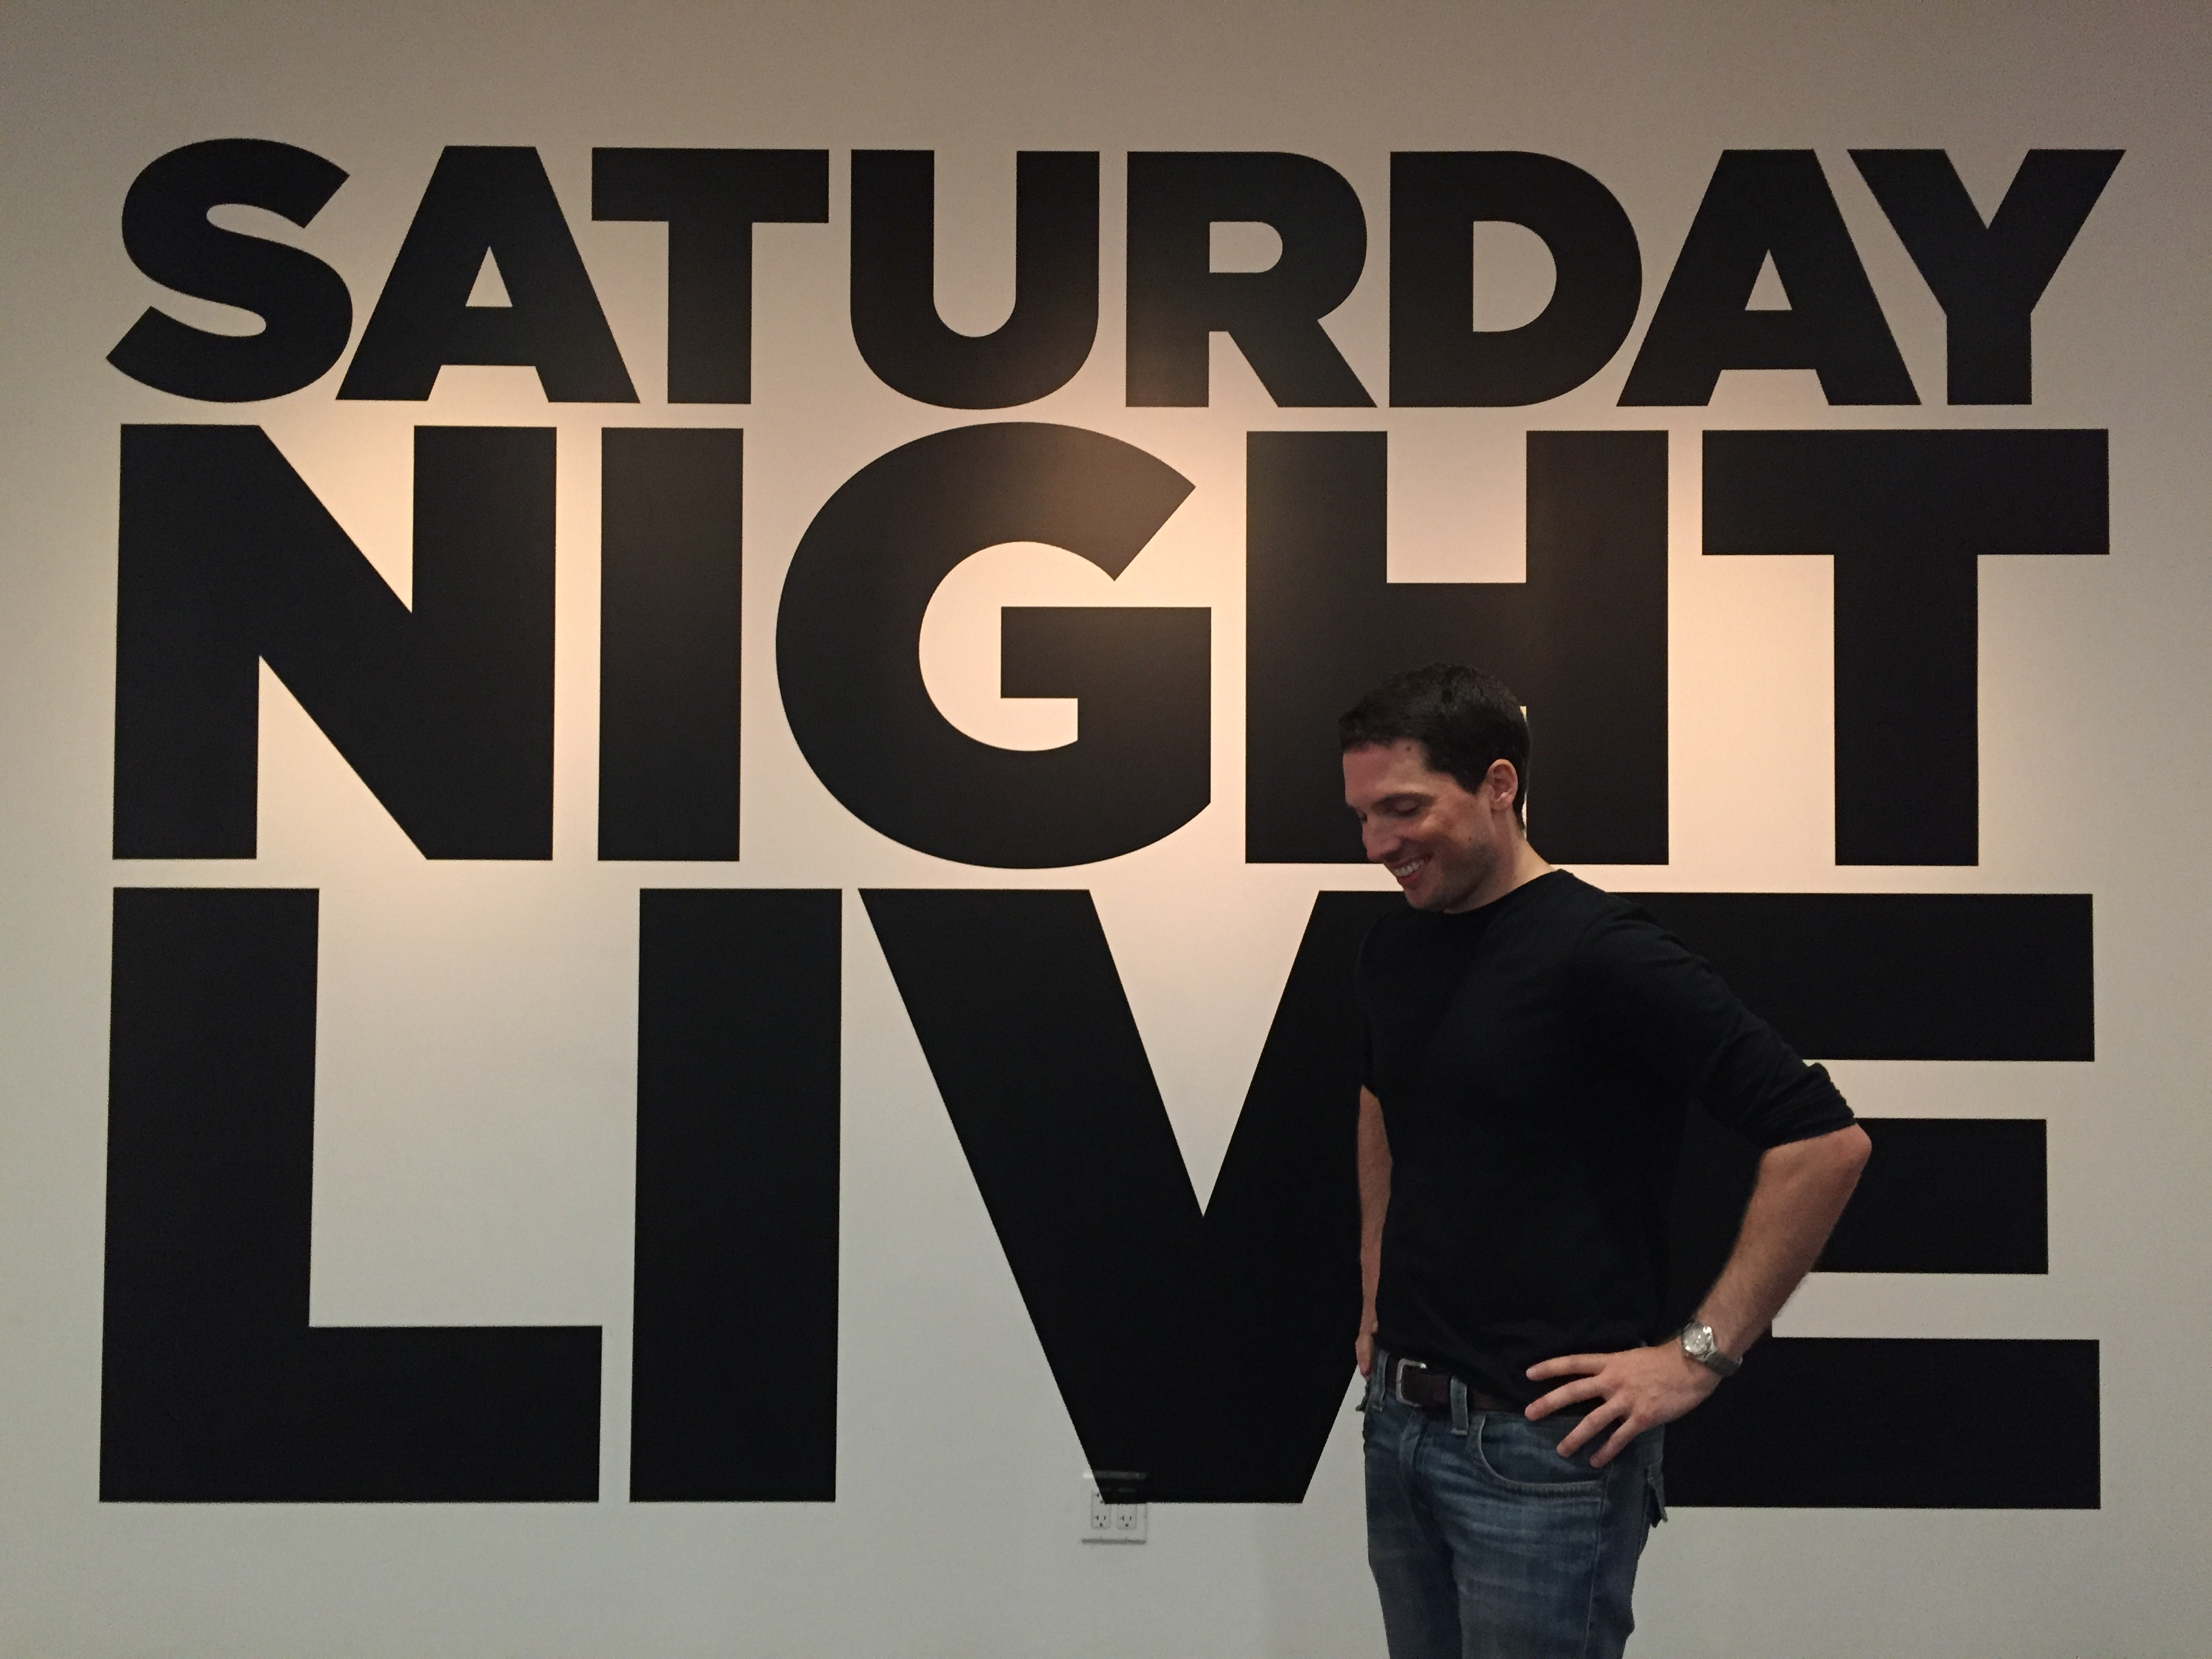 Matt Hirschfeld's art takes him from UMSL to SNL